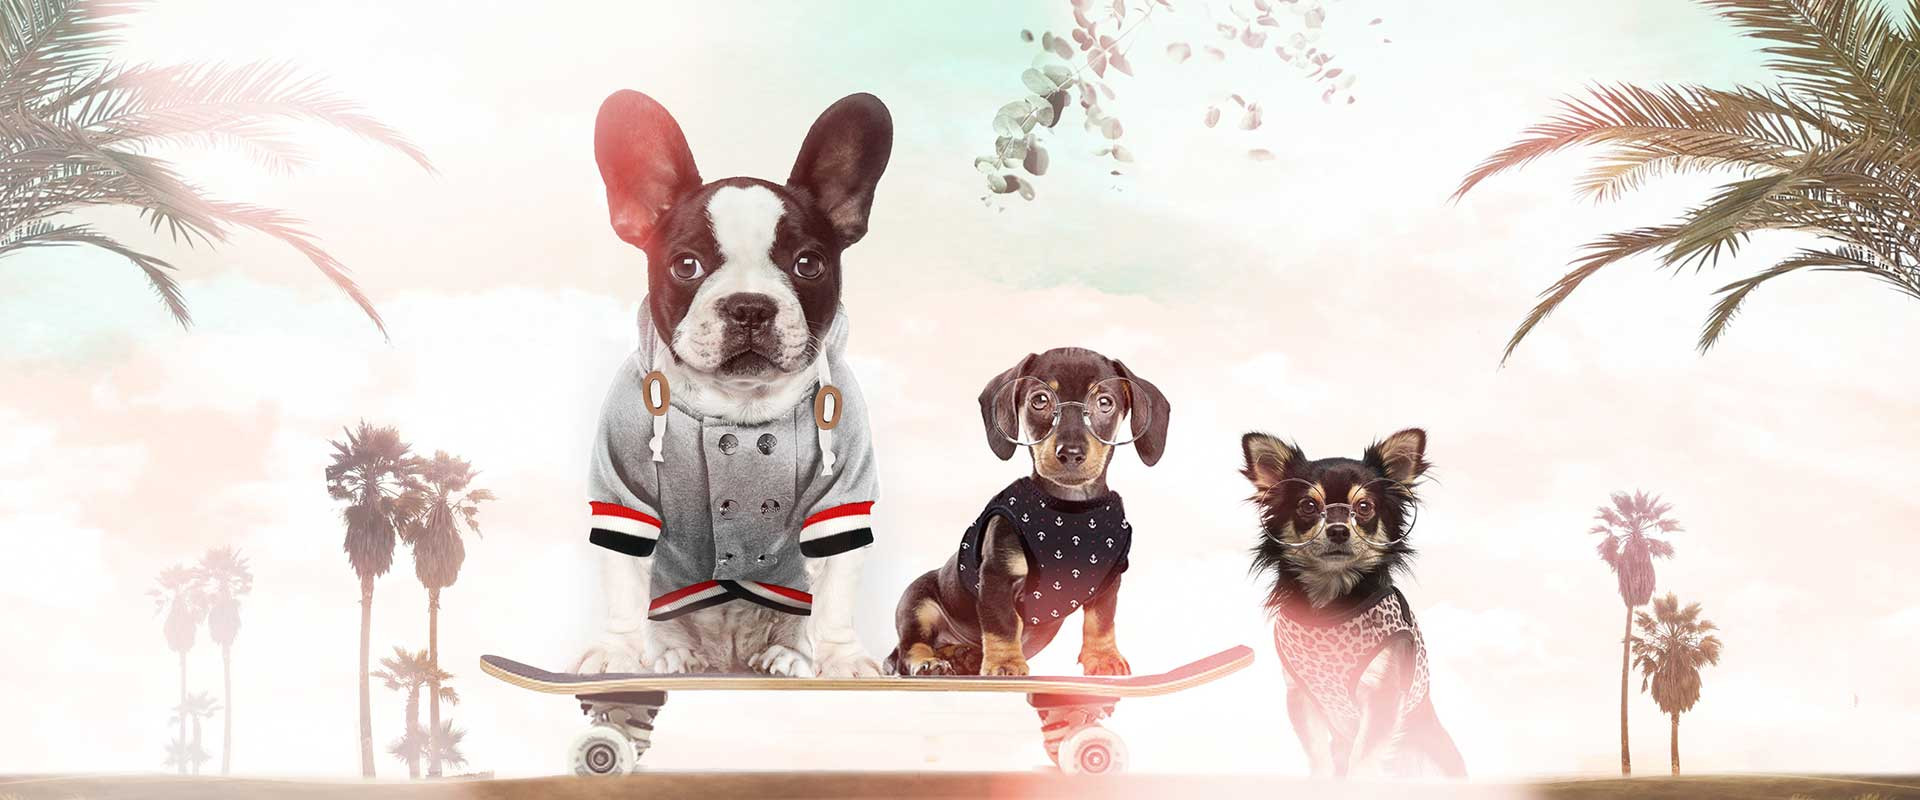 Milk & Pepper, Fashion And Accessories For Dogs & Cats - Fashion Summer 2020